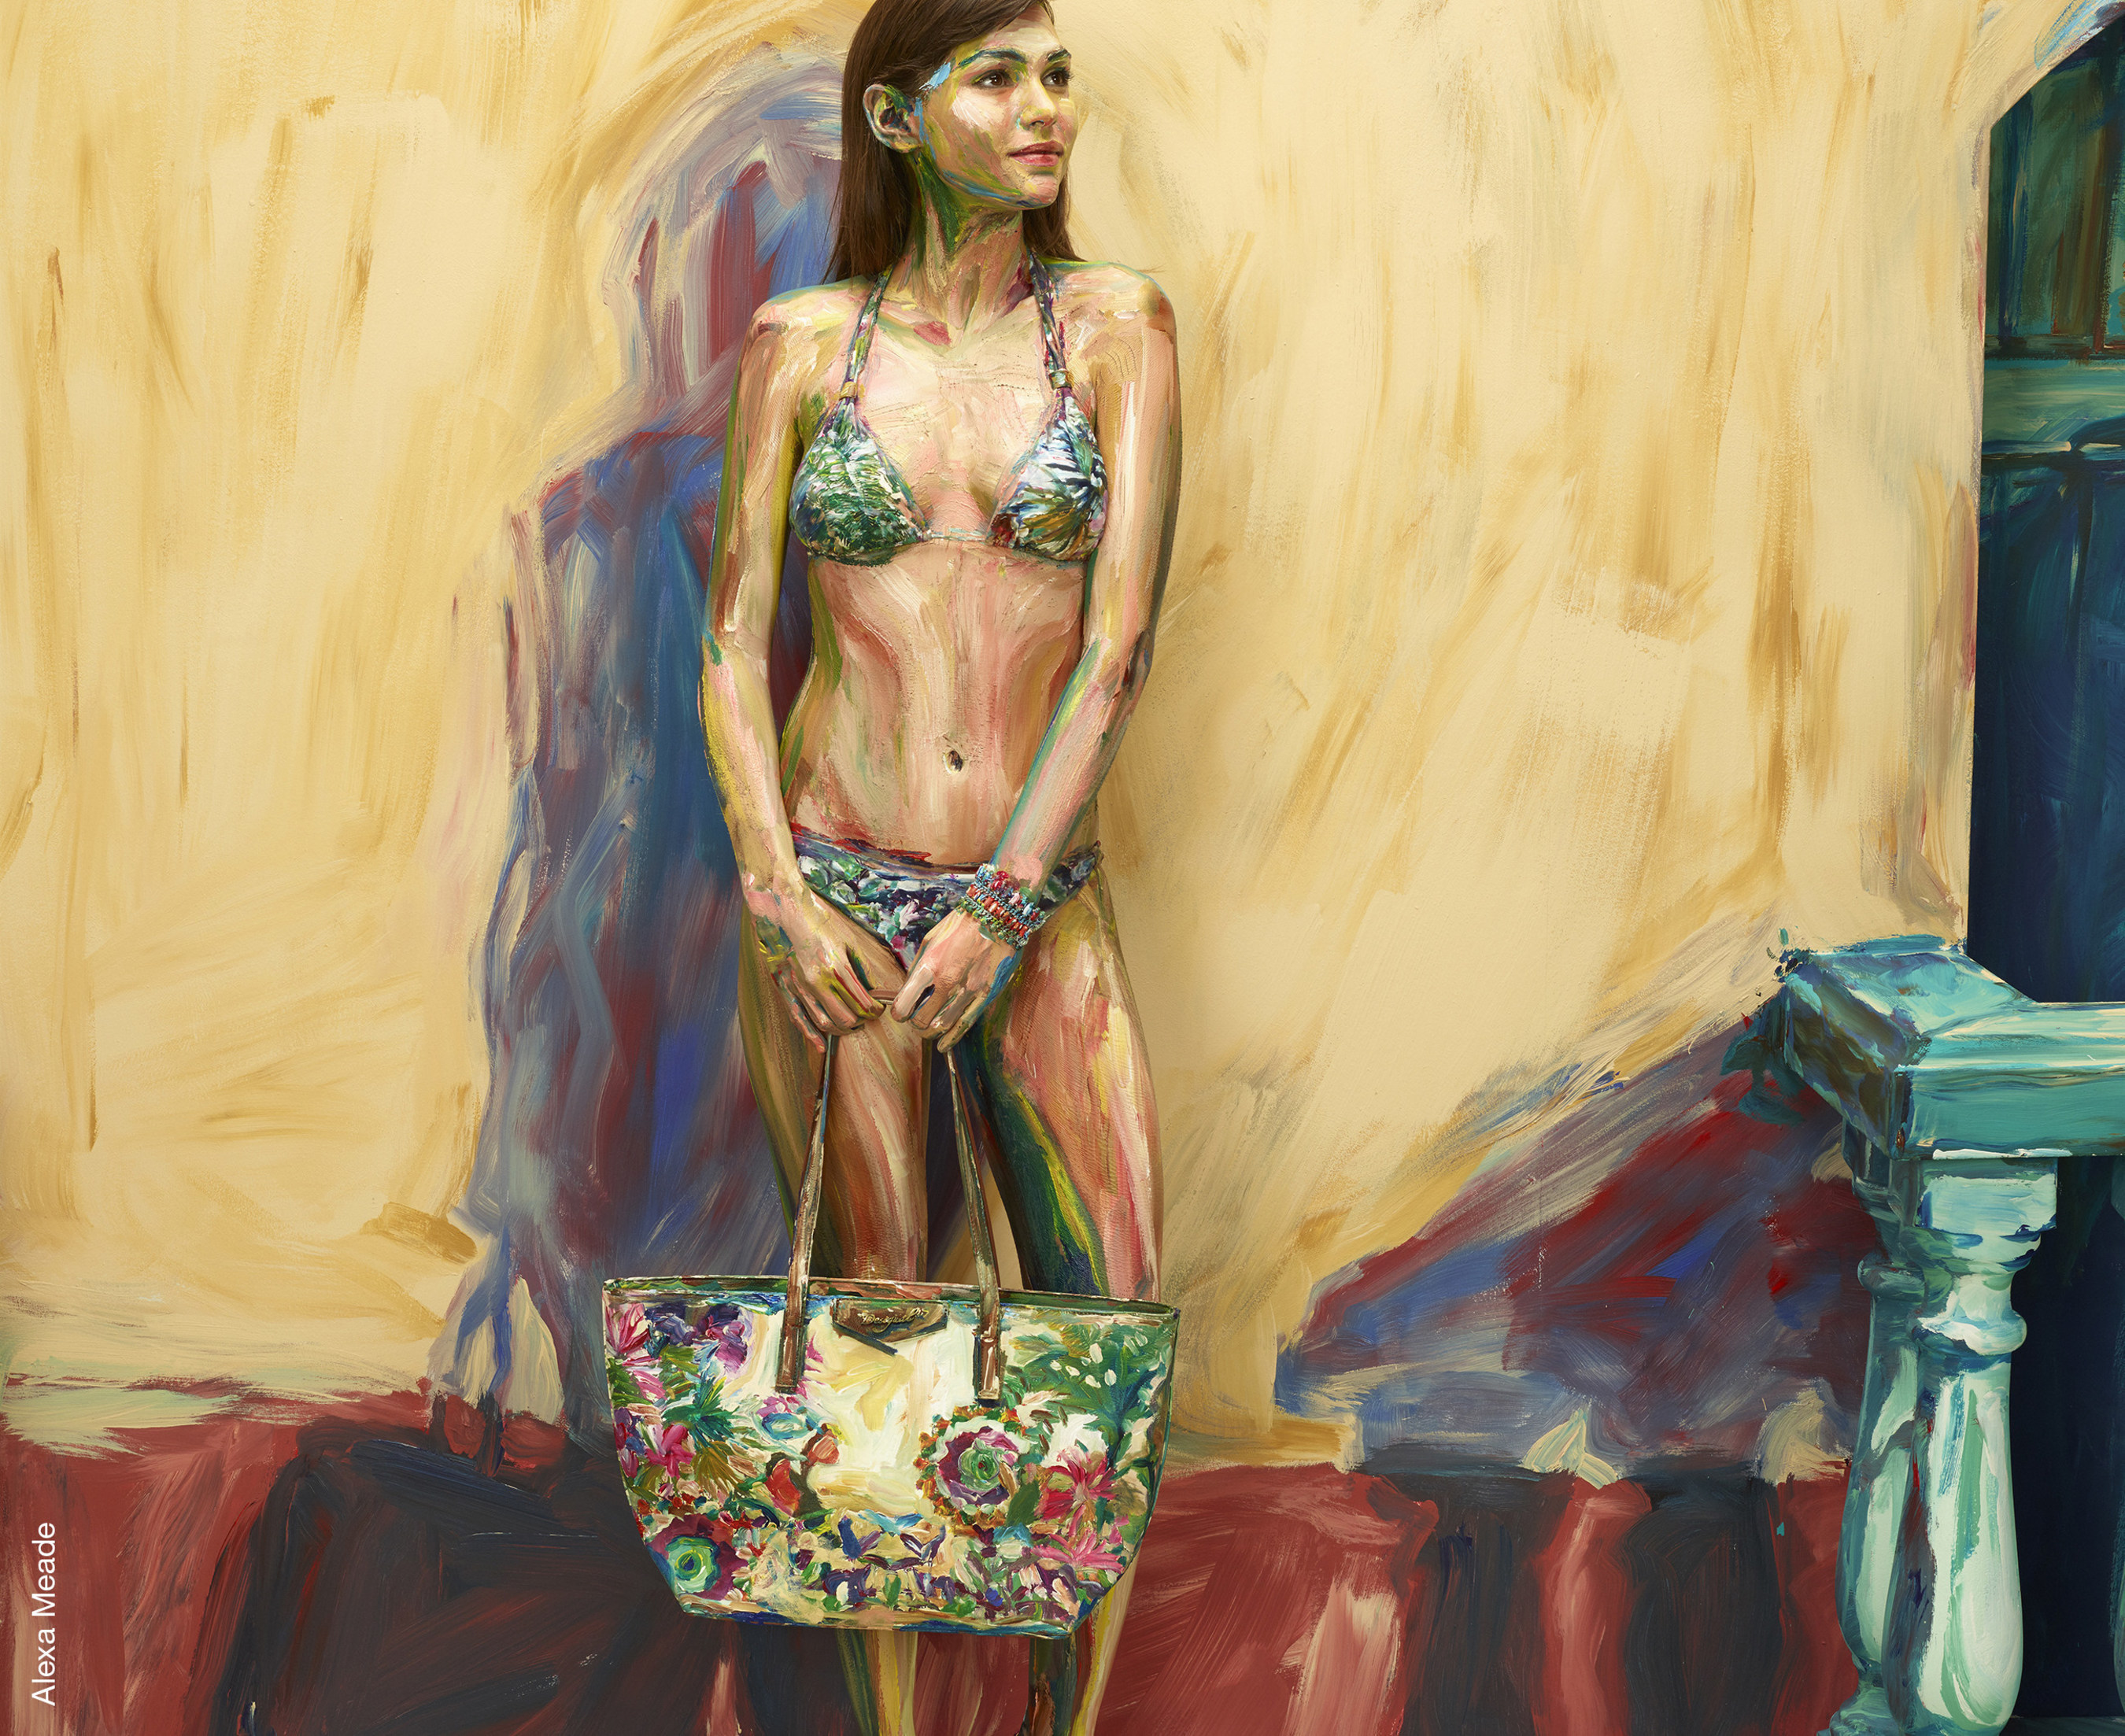 Desigual And Artist Alexa Meade Challenge Our Senses To Celebrate World Art Day, Today April 15th